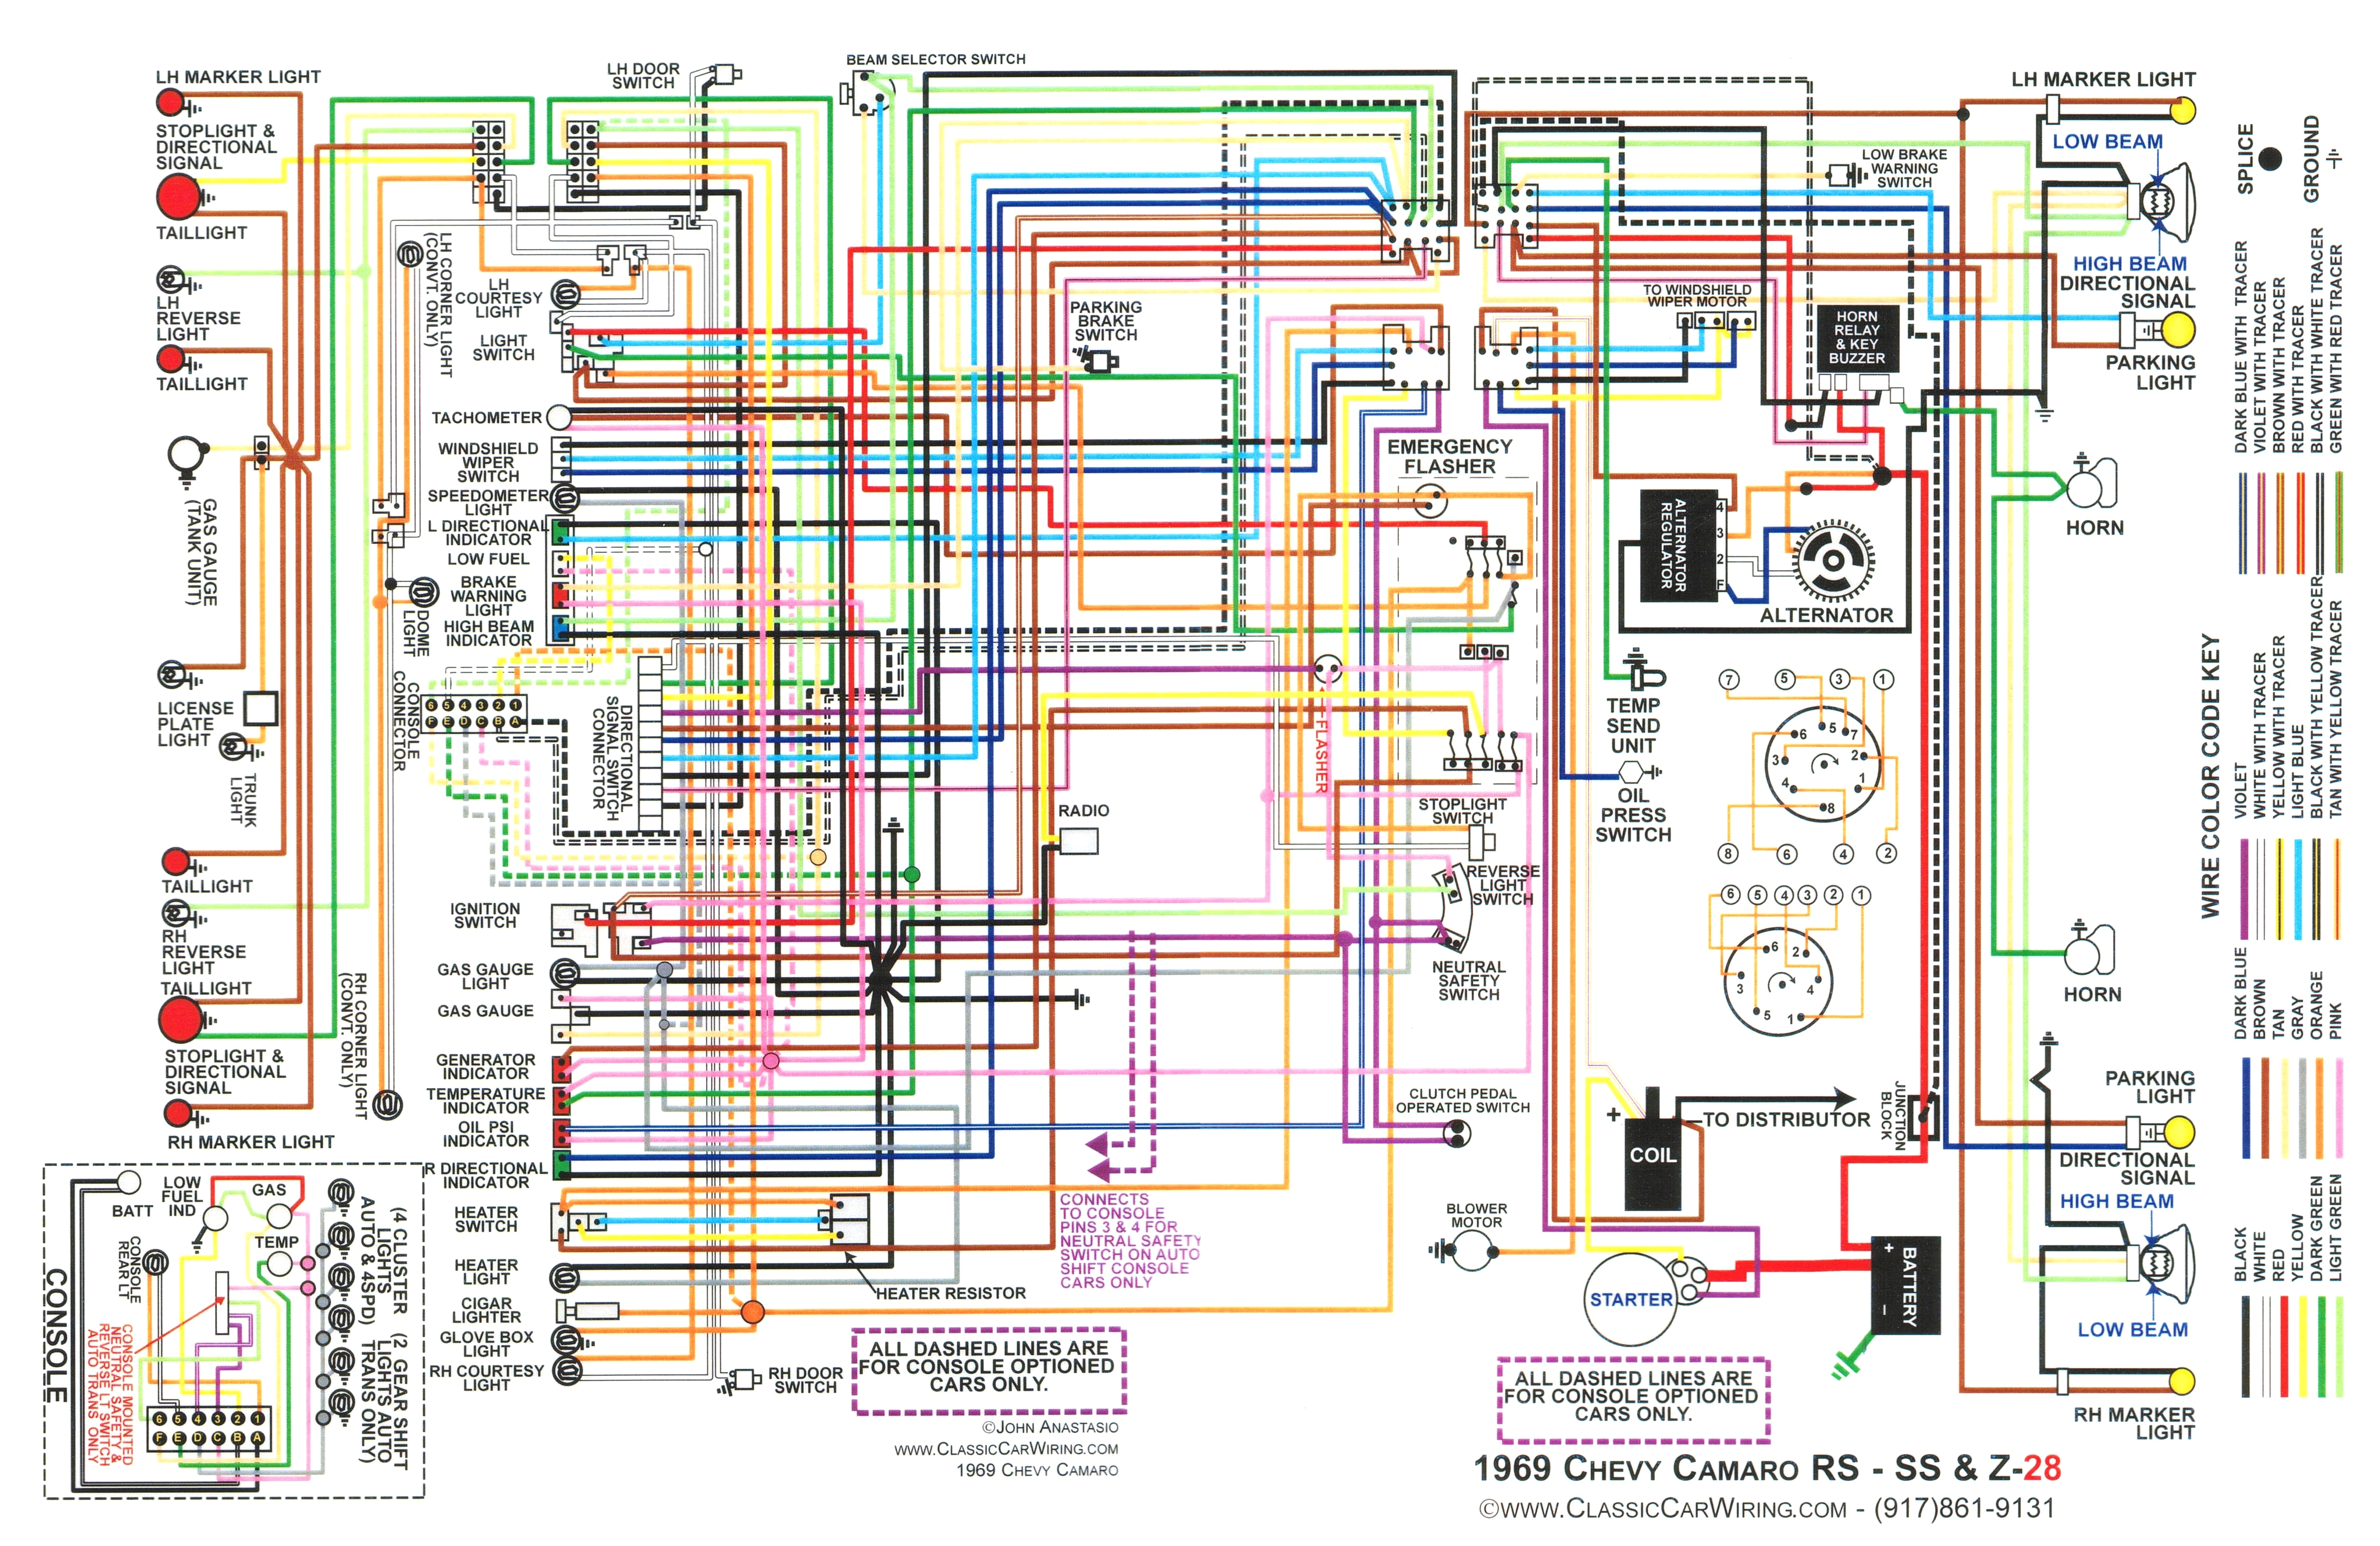 1966 chevelle dash wiring harness free download diagram